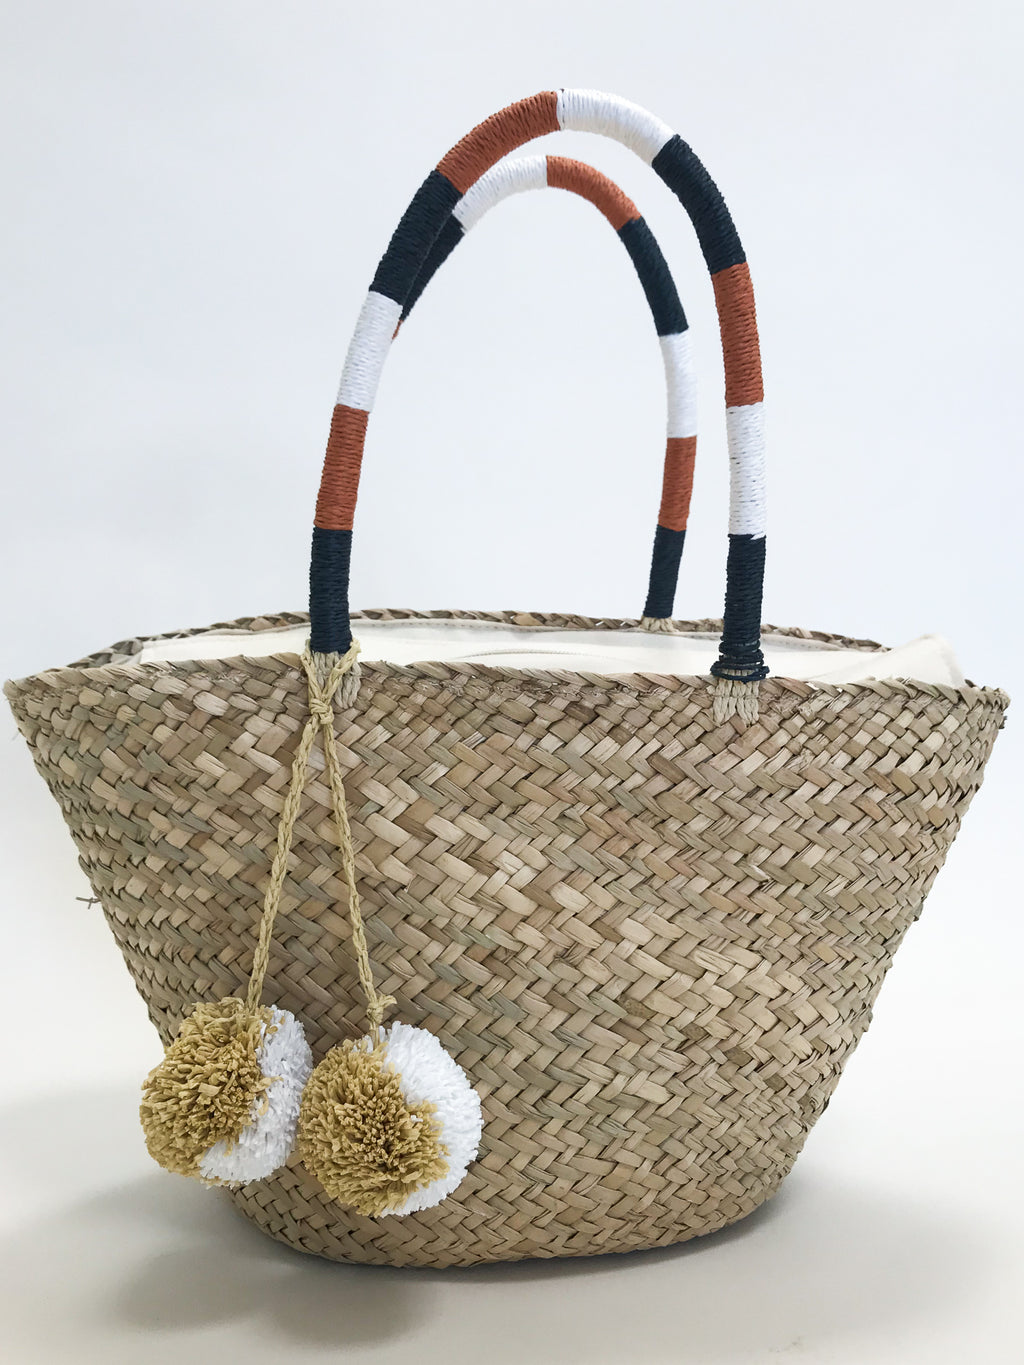 Sandbar Woven Bag - Stitch And Feather